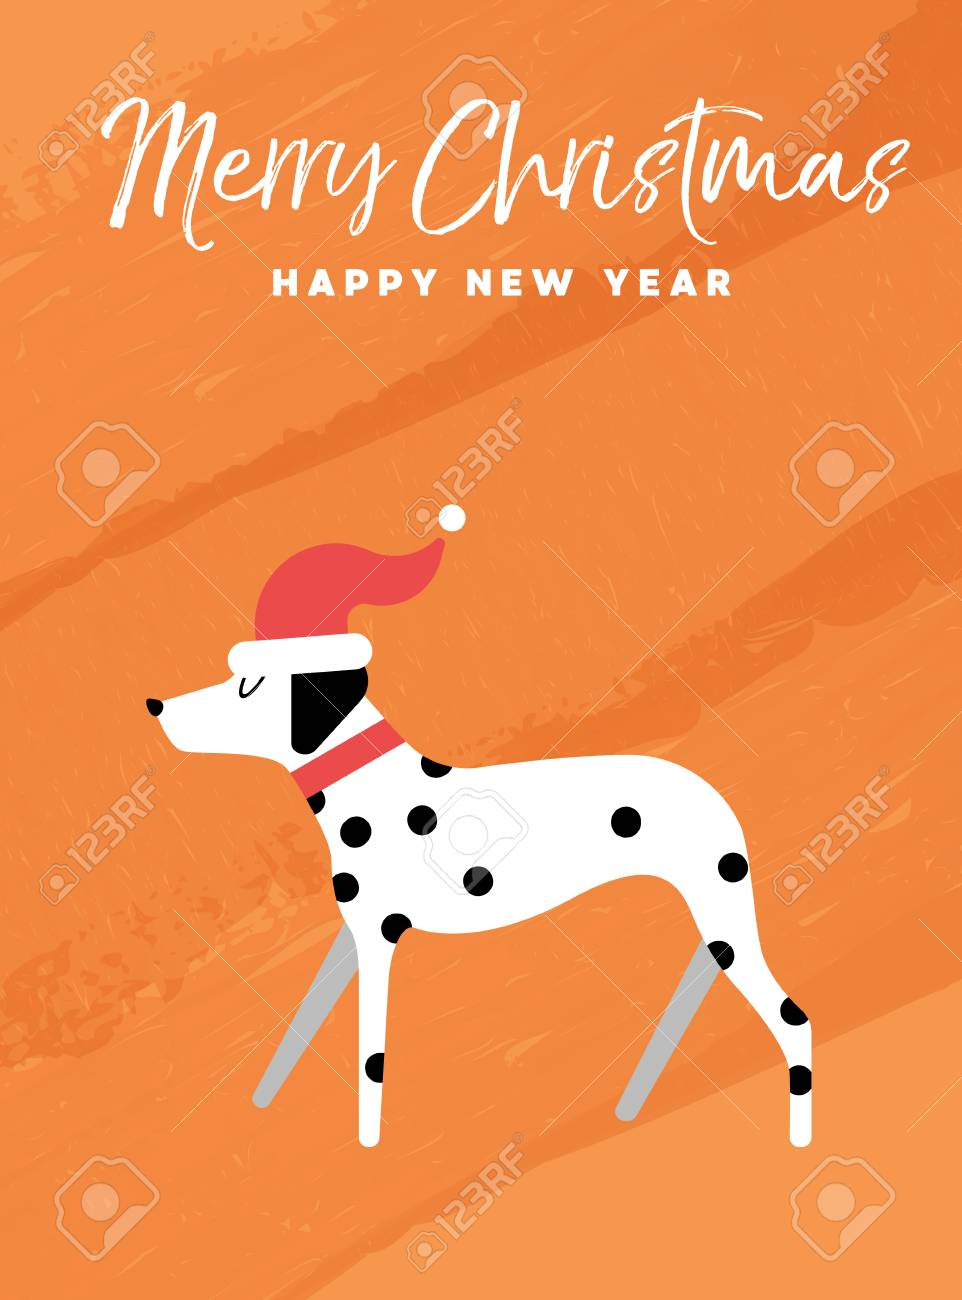 Merry christmas and happy new year holiday greeting card merry christmas and happy new year holiday greeting card illustration dalmatian dog with santa claus m4hsunfo